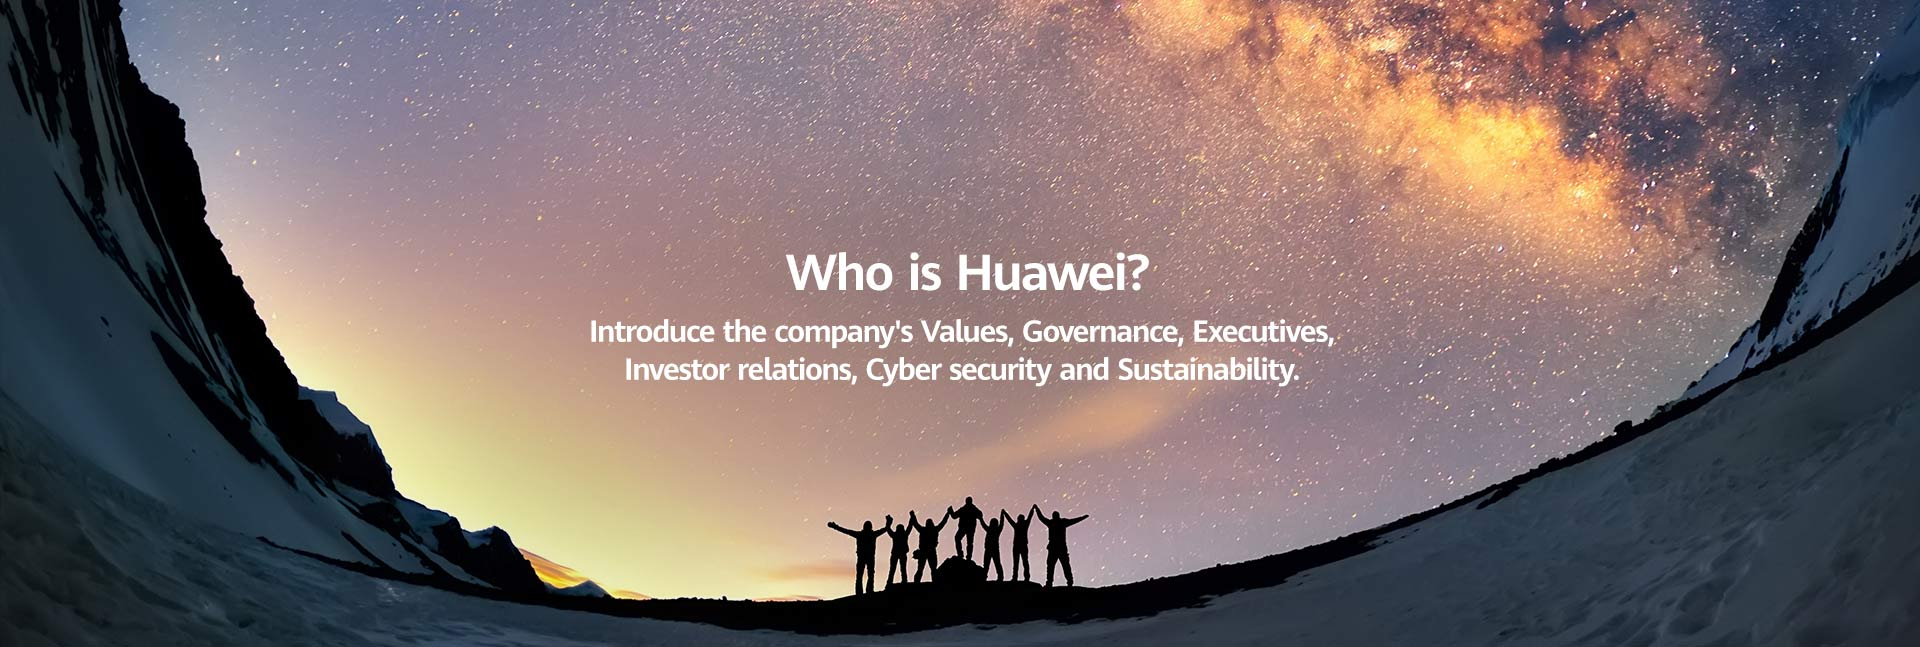 huawei facts header FINAL